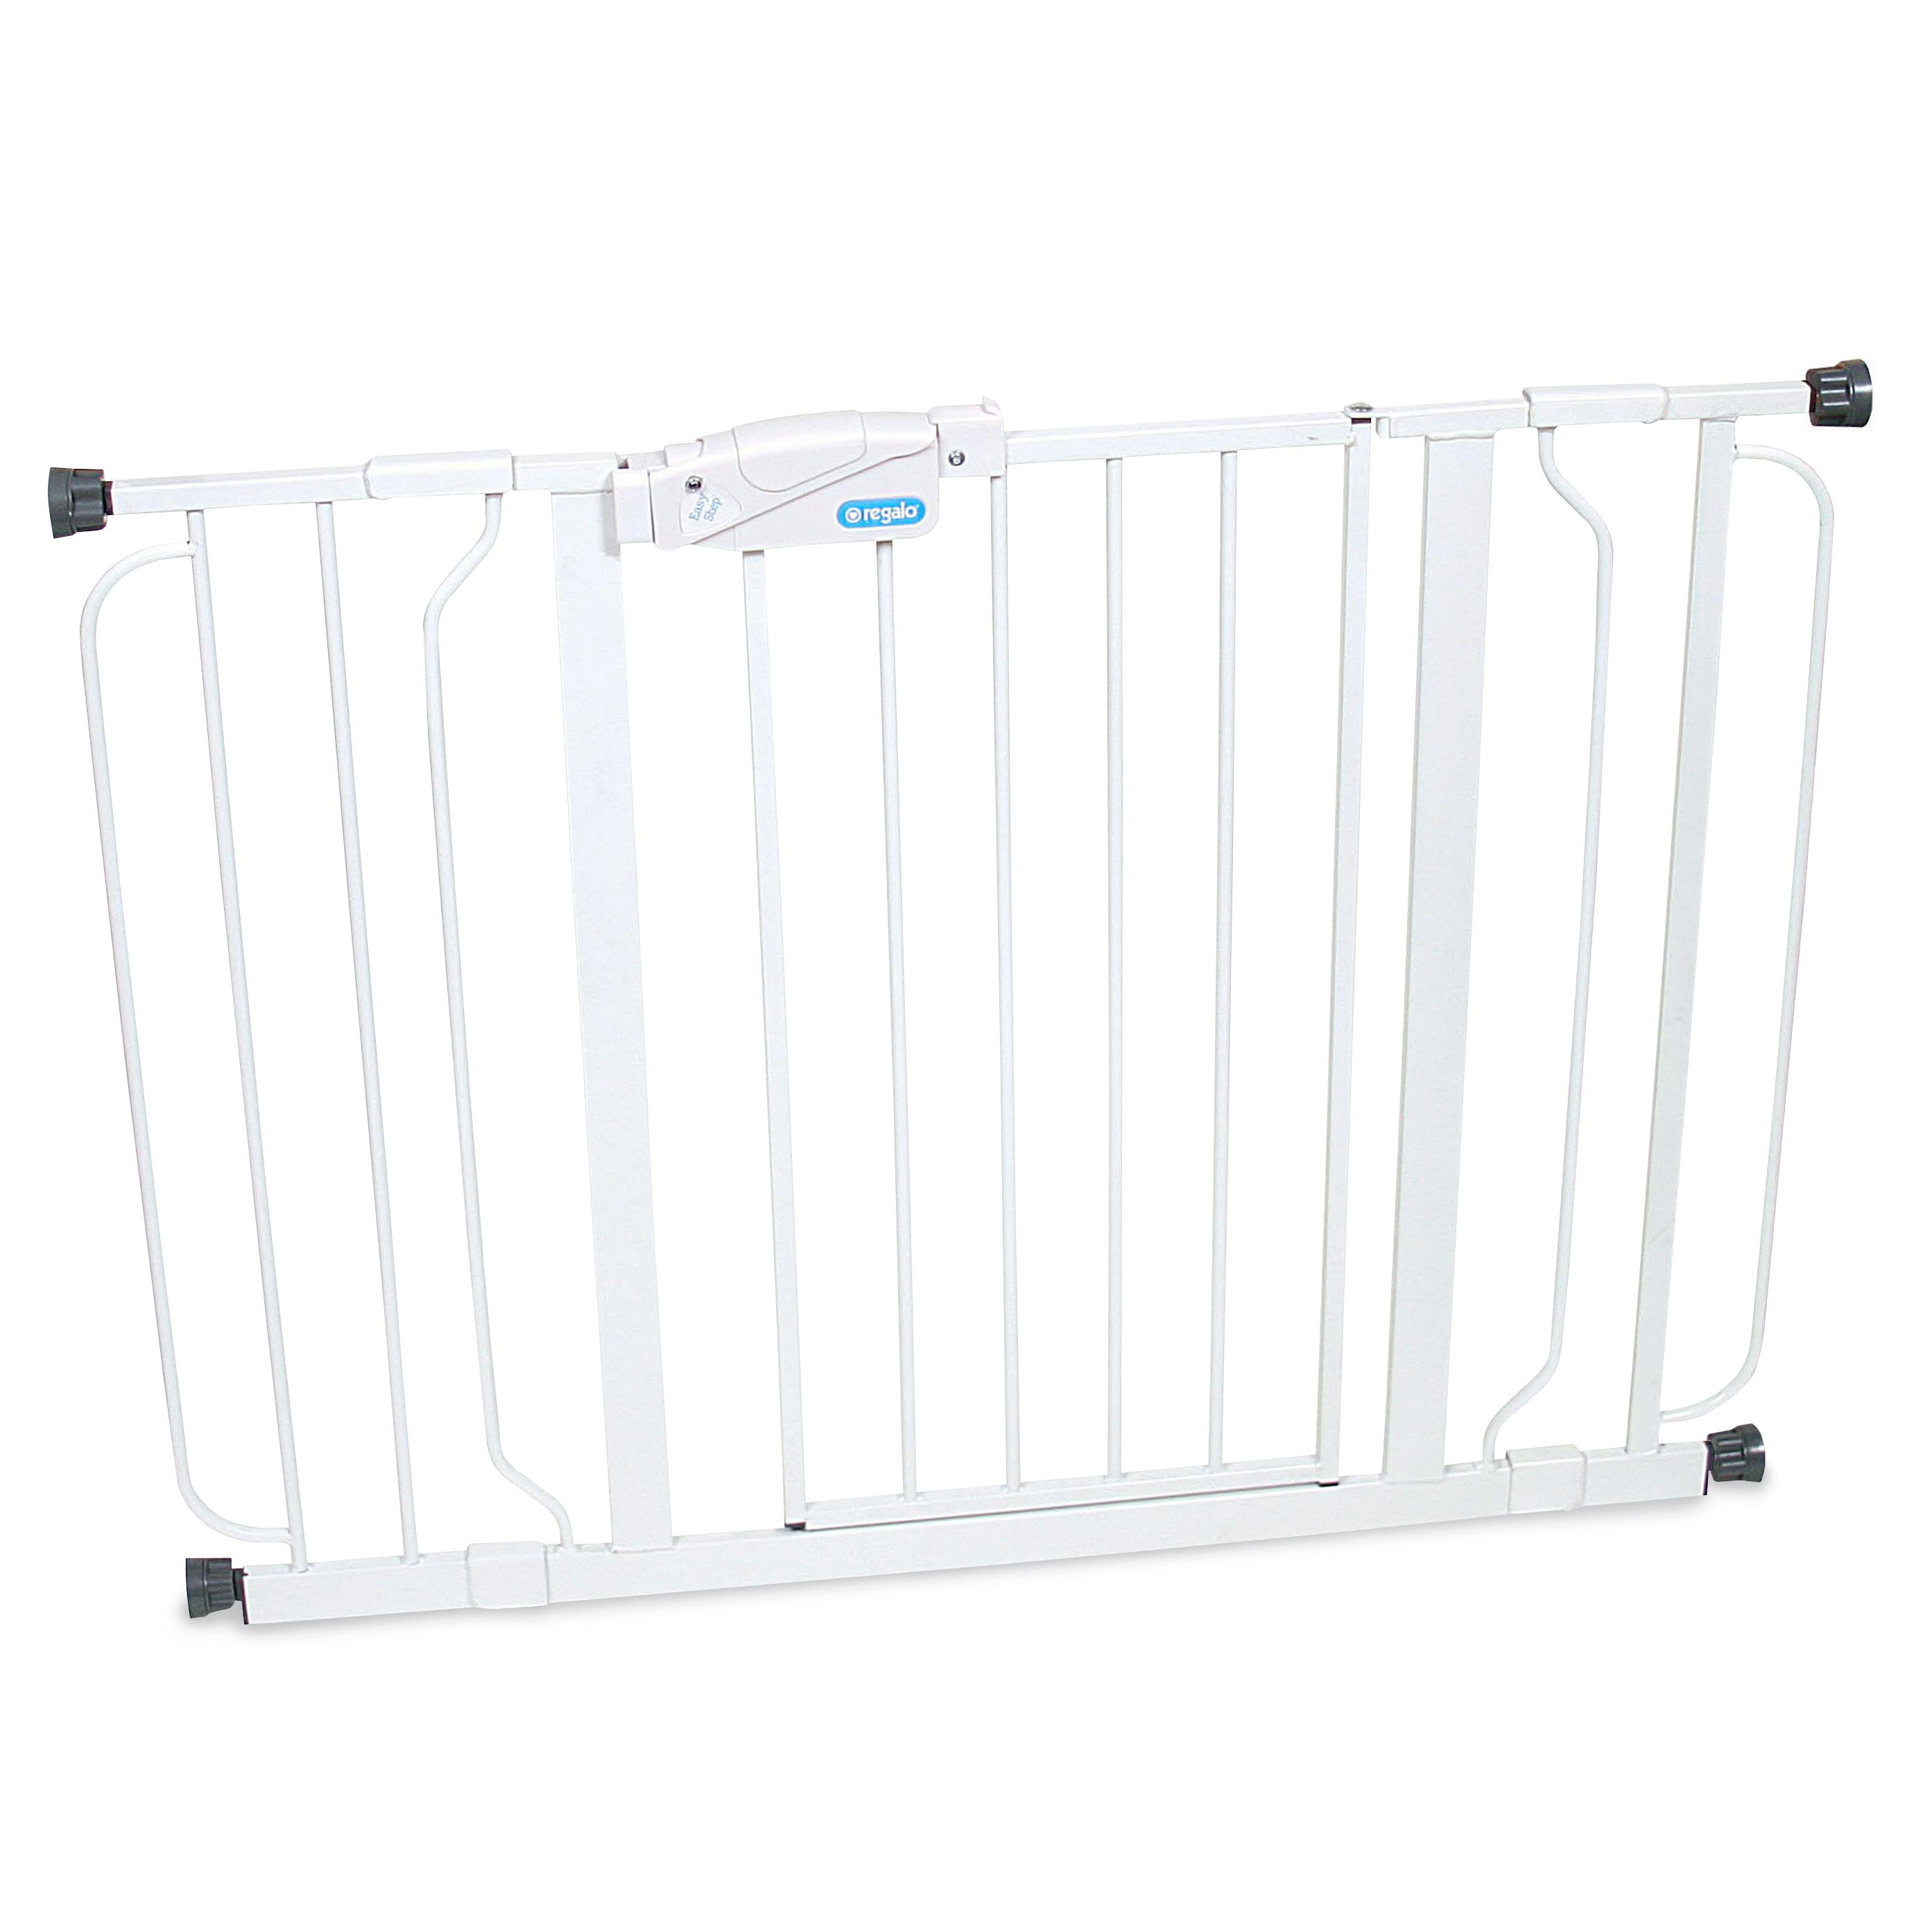 regalo easy step 44 inch extra wide baby gate. Black Bedroom Furniture Sets. Home Design Ideas